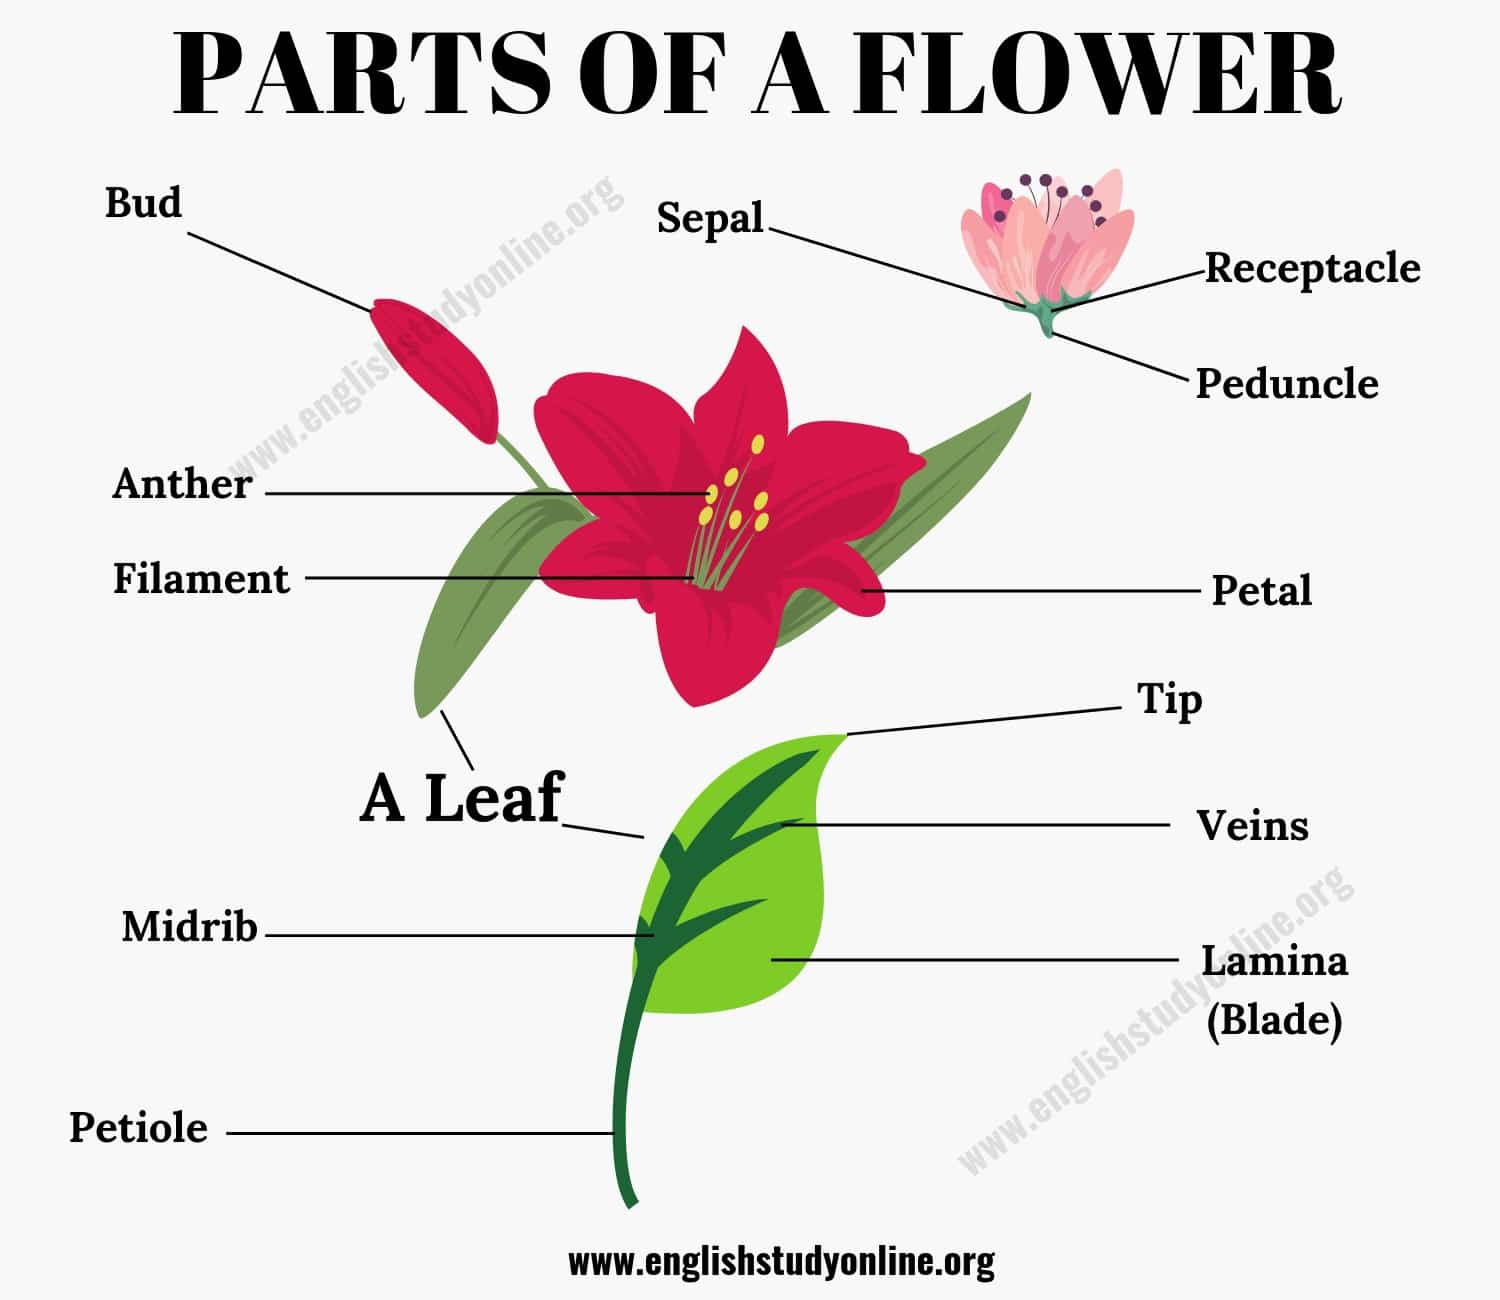 Parts of A Flower: Different Parts of A Flower & A Leaf in English 2